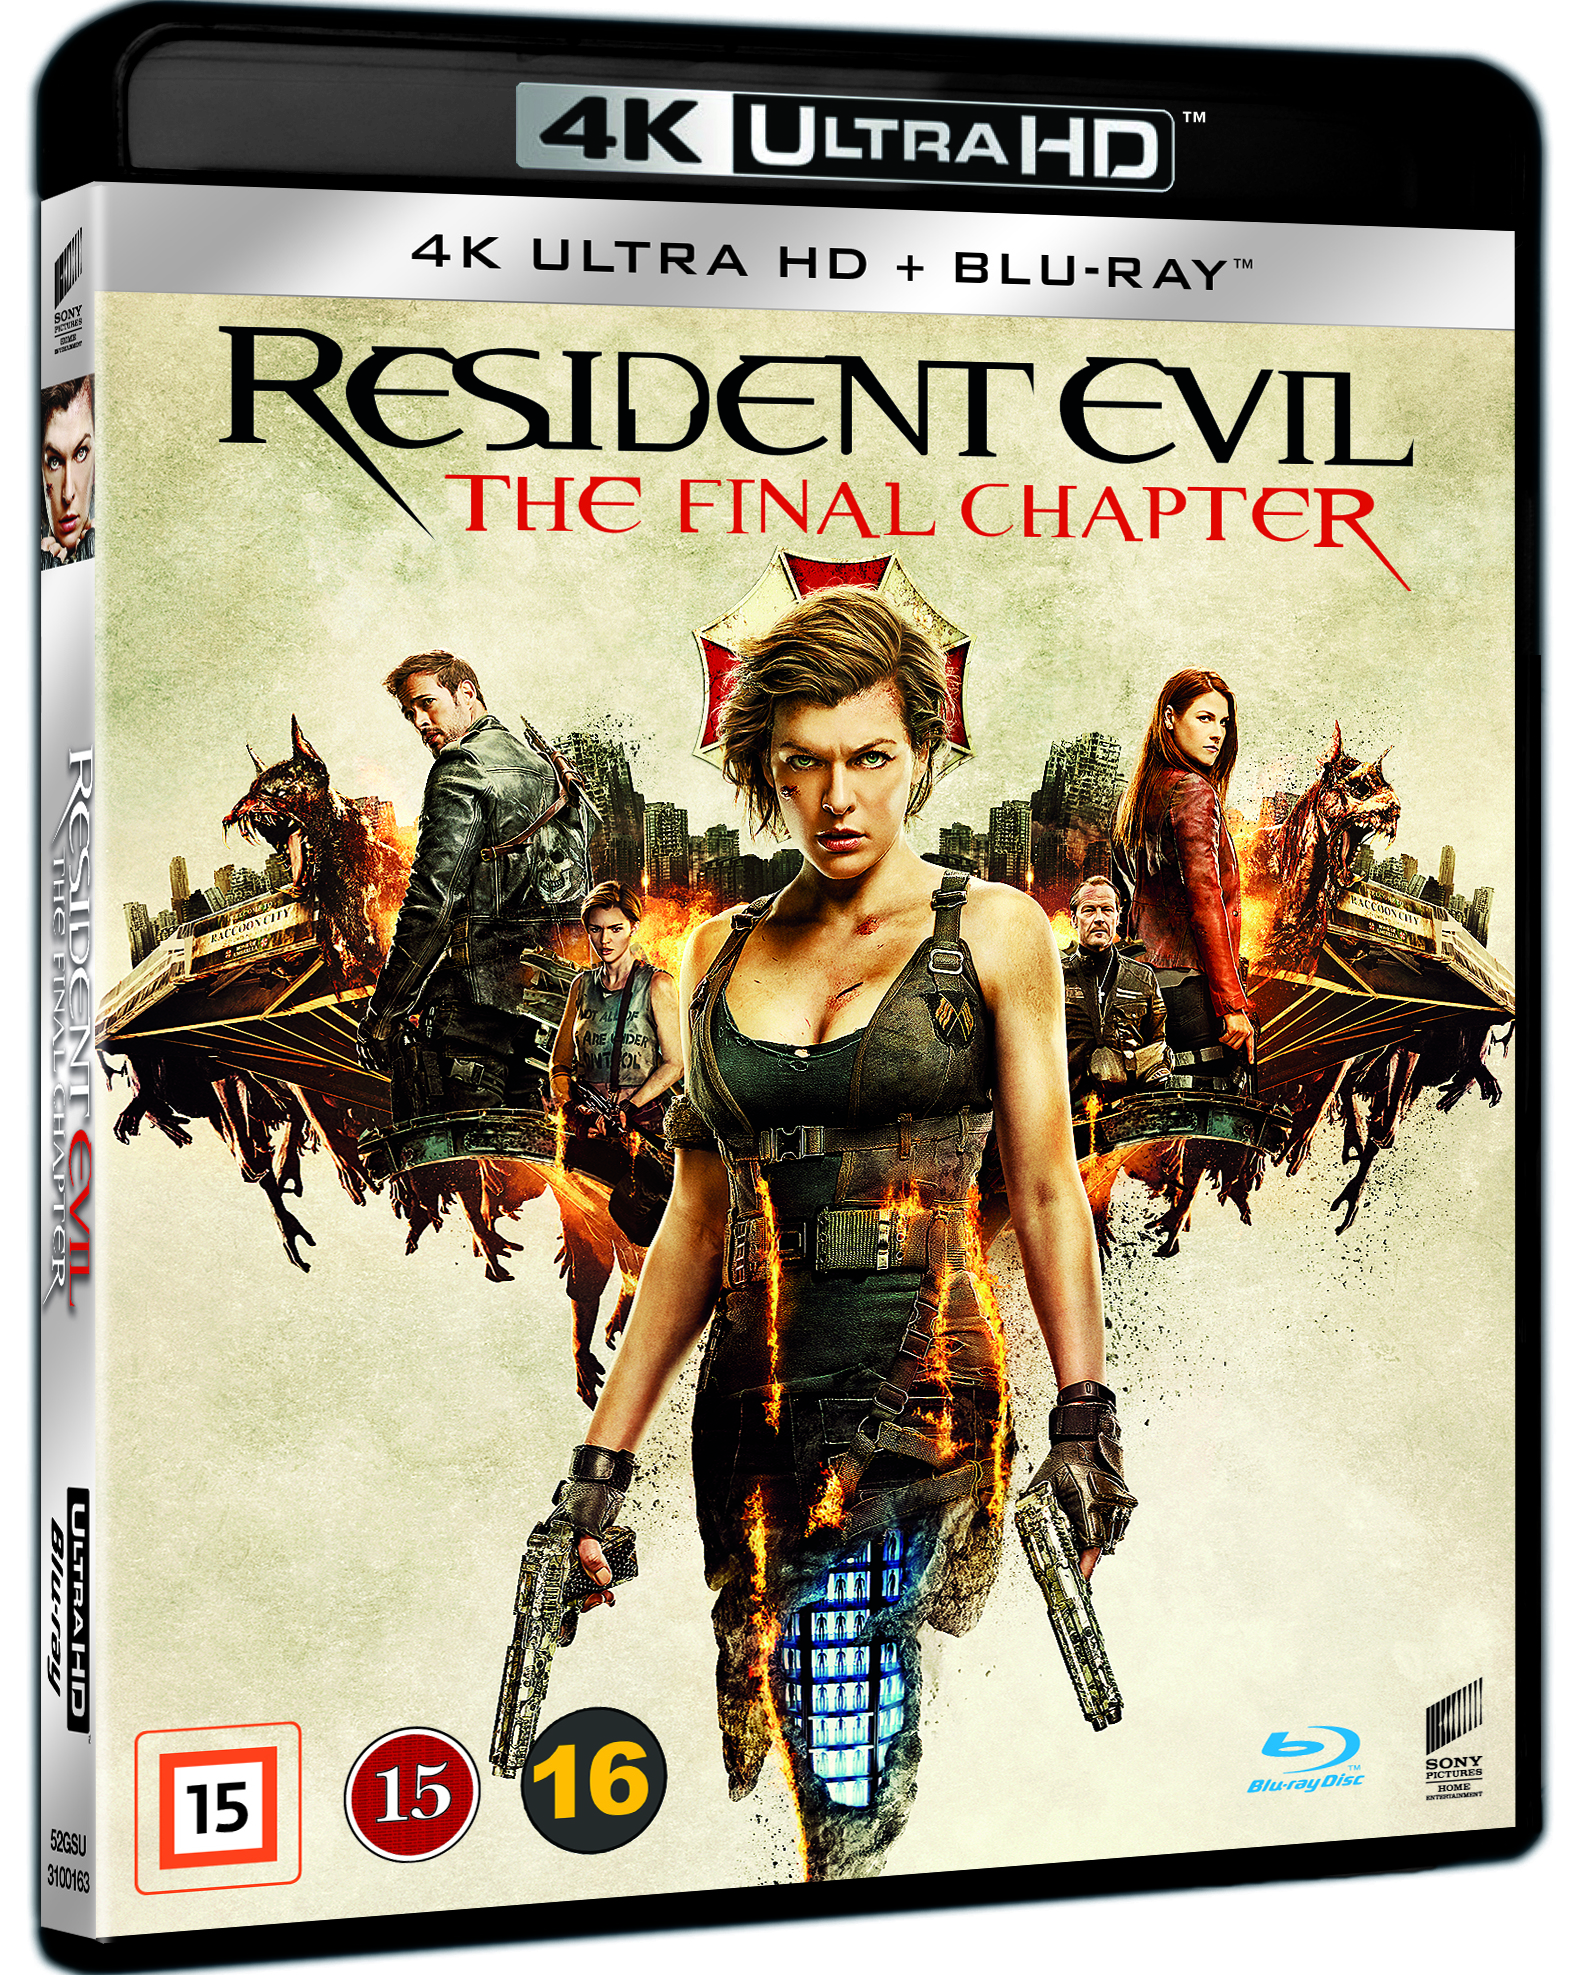 Resident Evil: The Final Chapter (4K Blu-Ray)